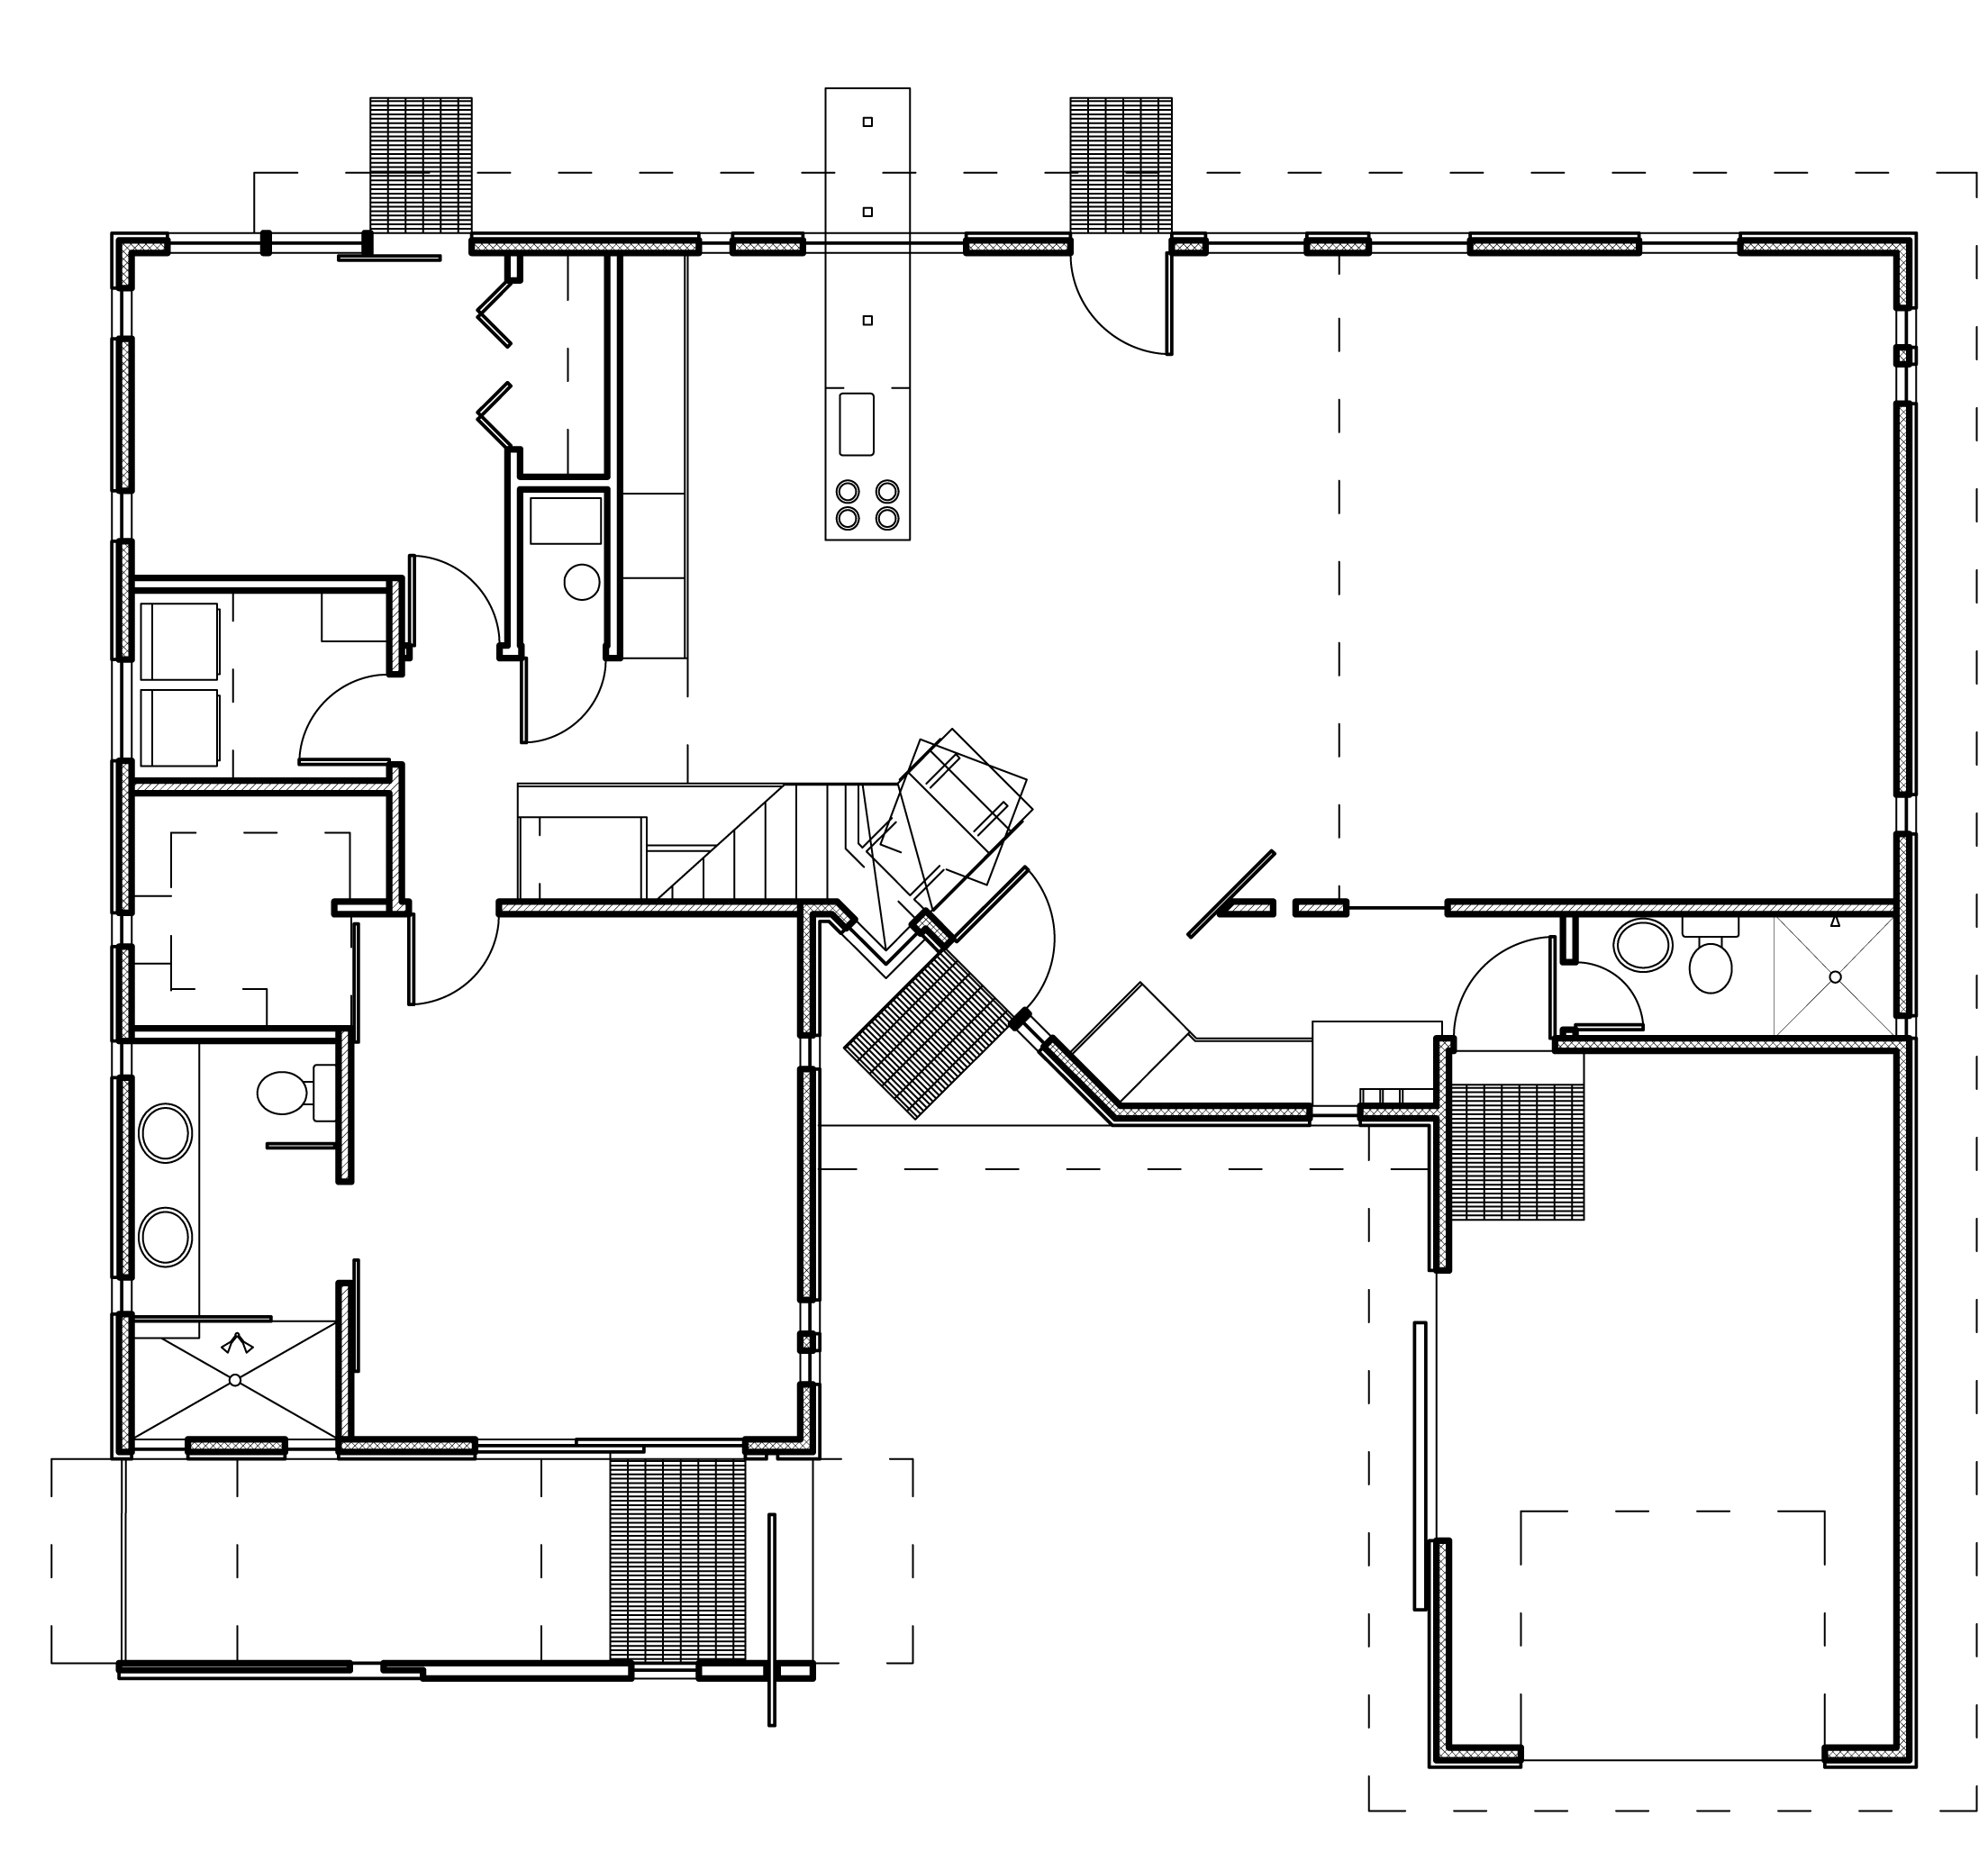 Modern house plans contemporary home designs floor plan 03 for Building plans and designs